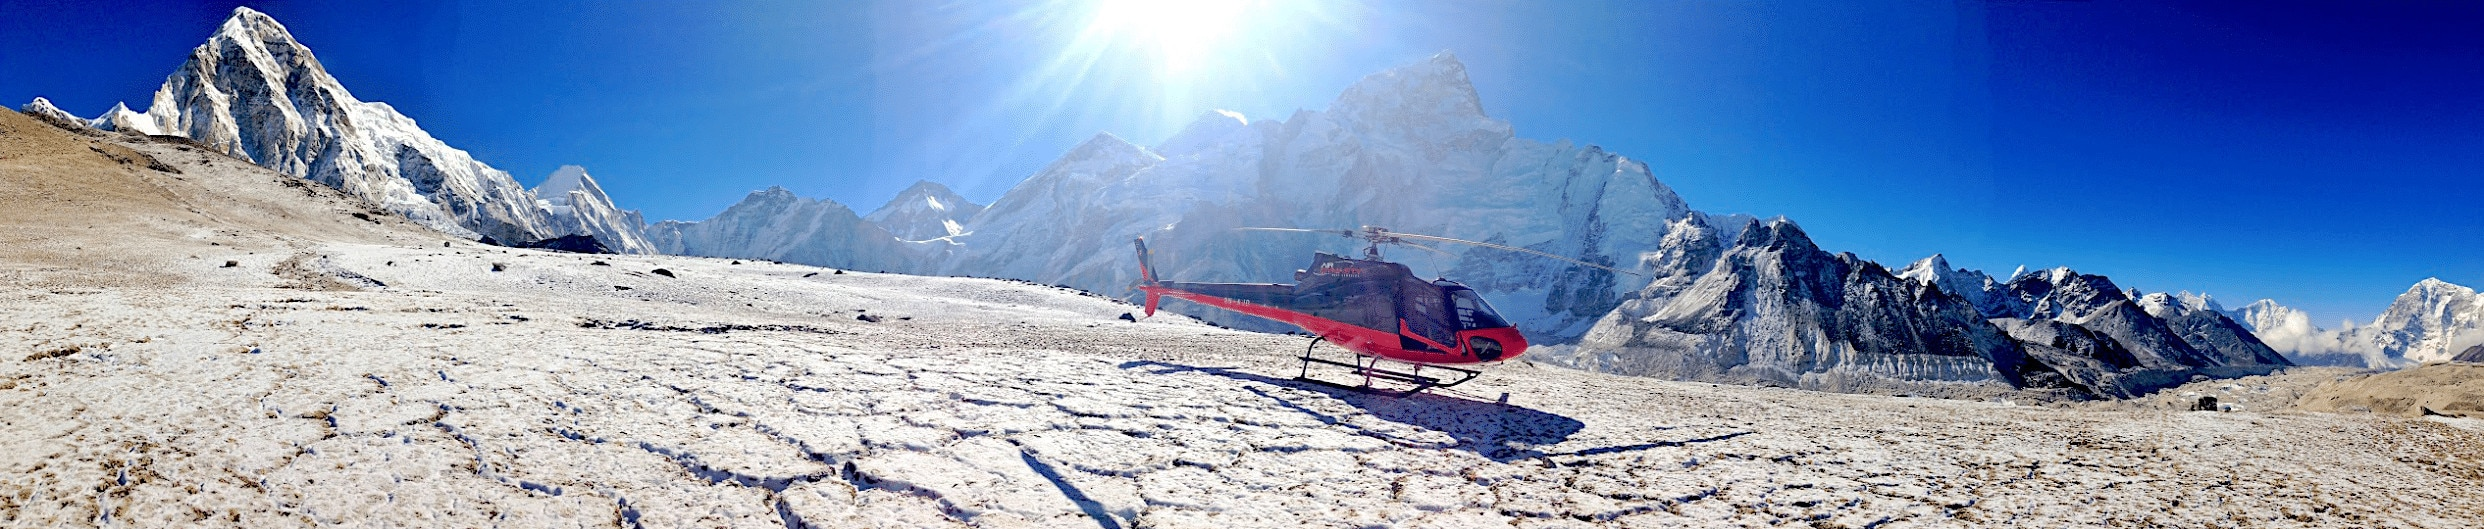 Everest Base Camp helicopter tour viator